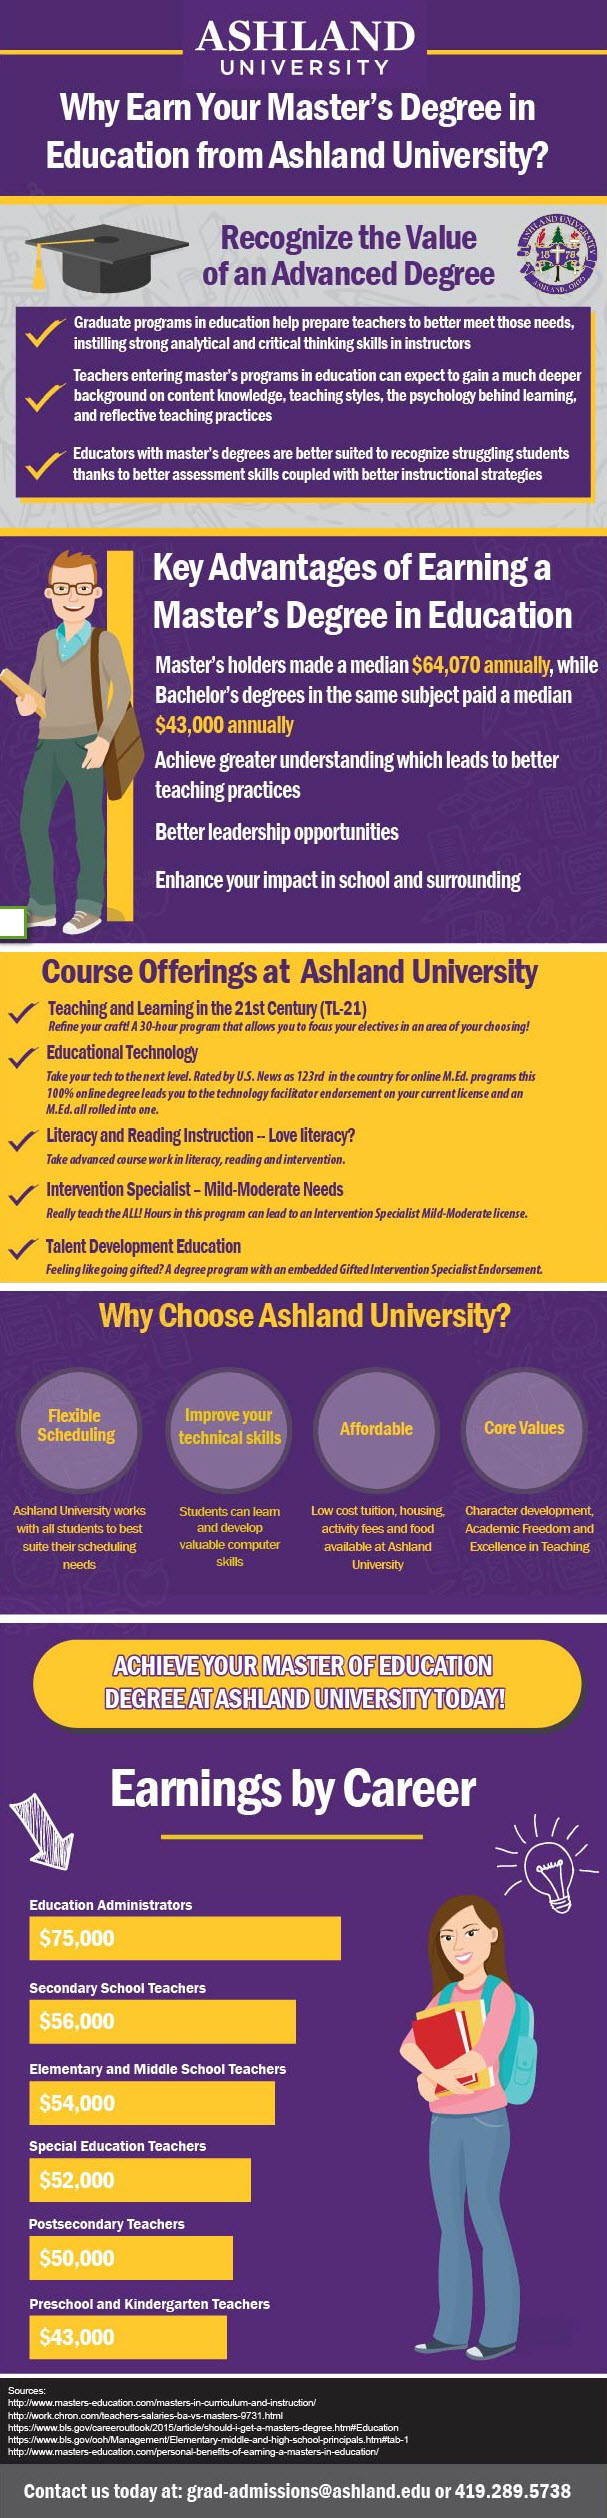 Why Earn Your Master's Degree in Education At Ashland University